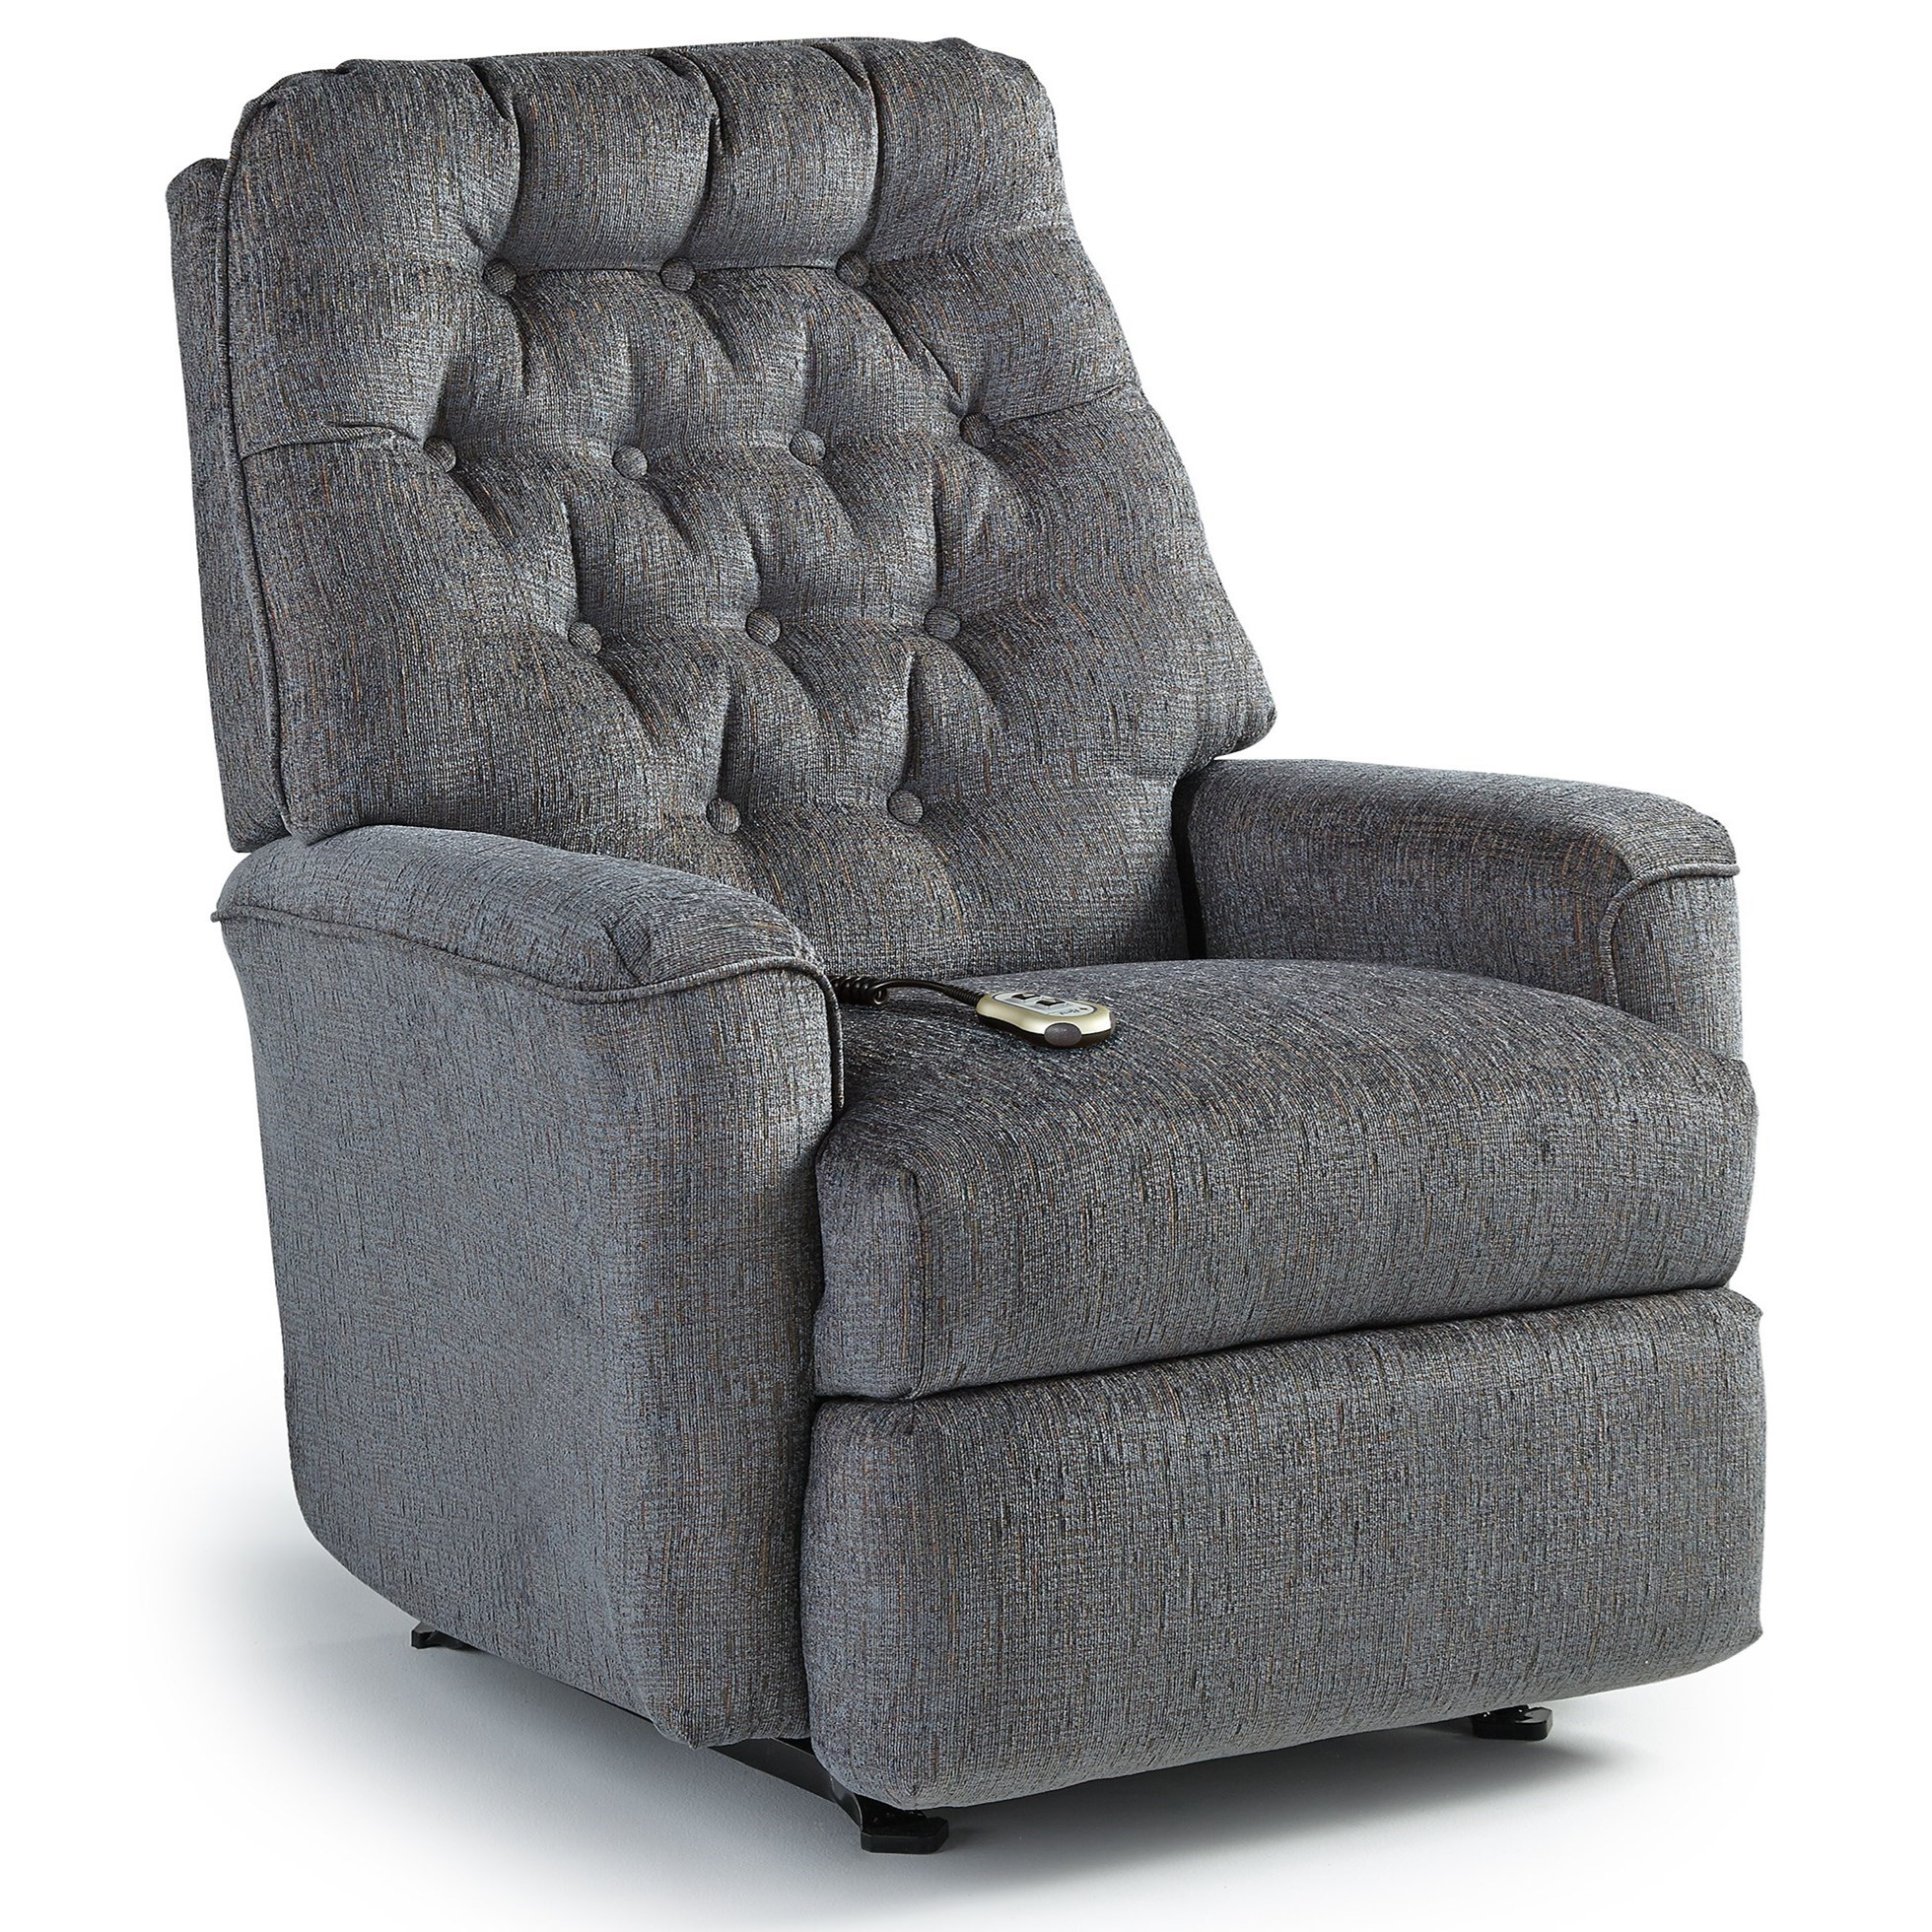 Lift Chairs Recliners Best Home Furnishings Medium Recliners Mexi Power Lift